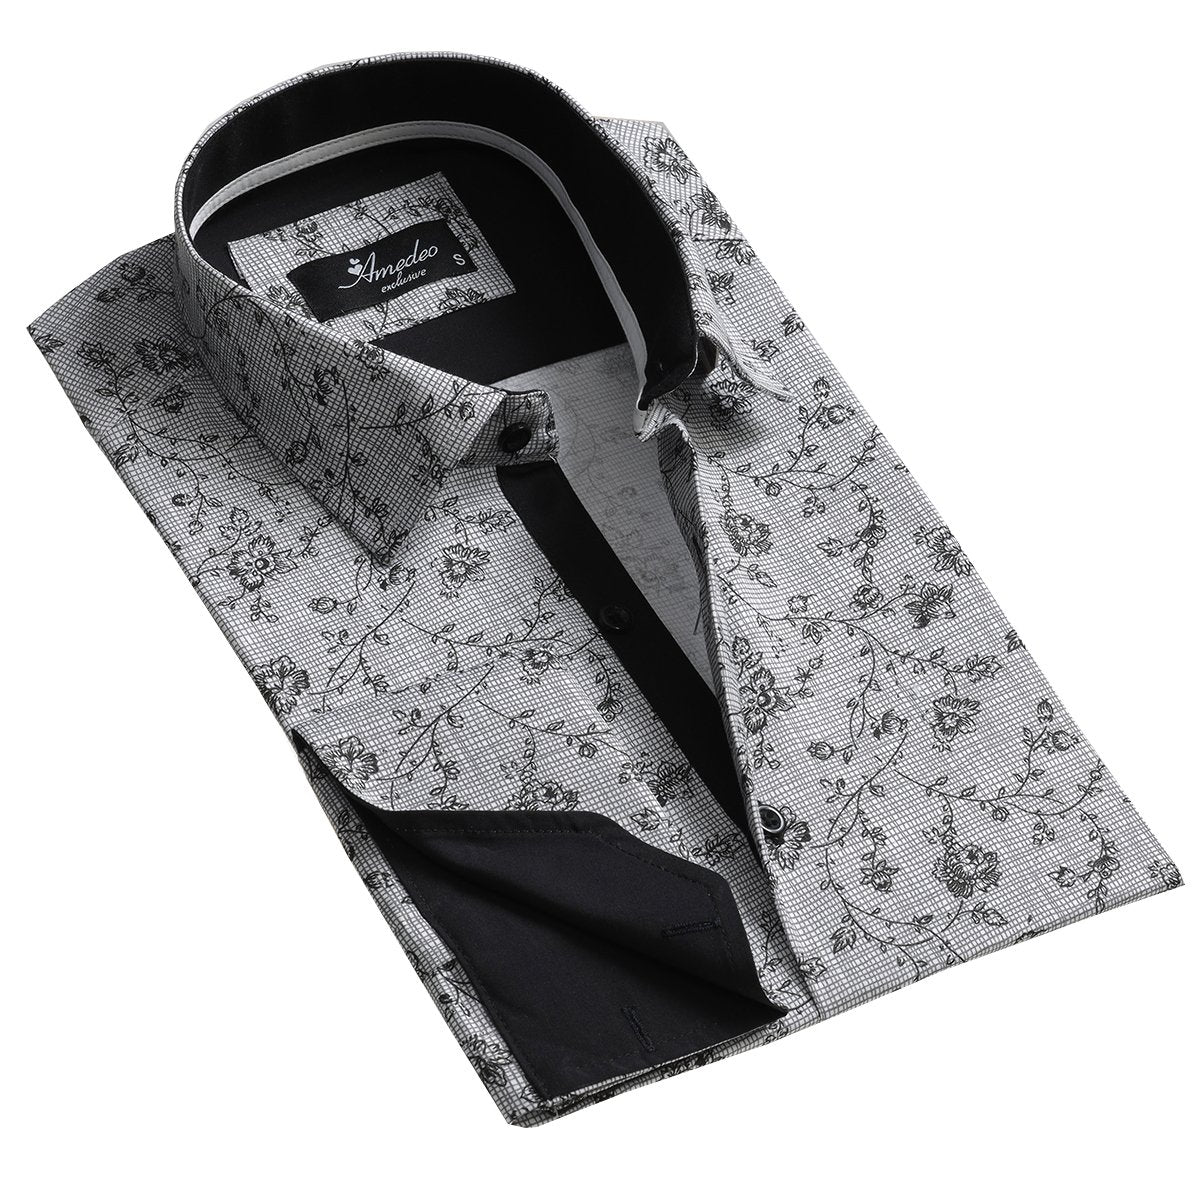 Black and White Design Men's Reversible Dress Shirt, Button Down Slim Fit with French Cuff Casual and Formal - Amedeo Exclusive